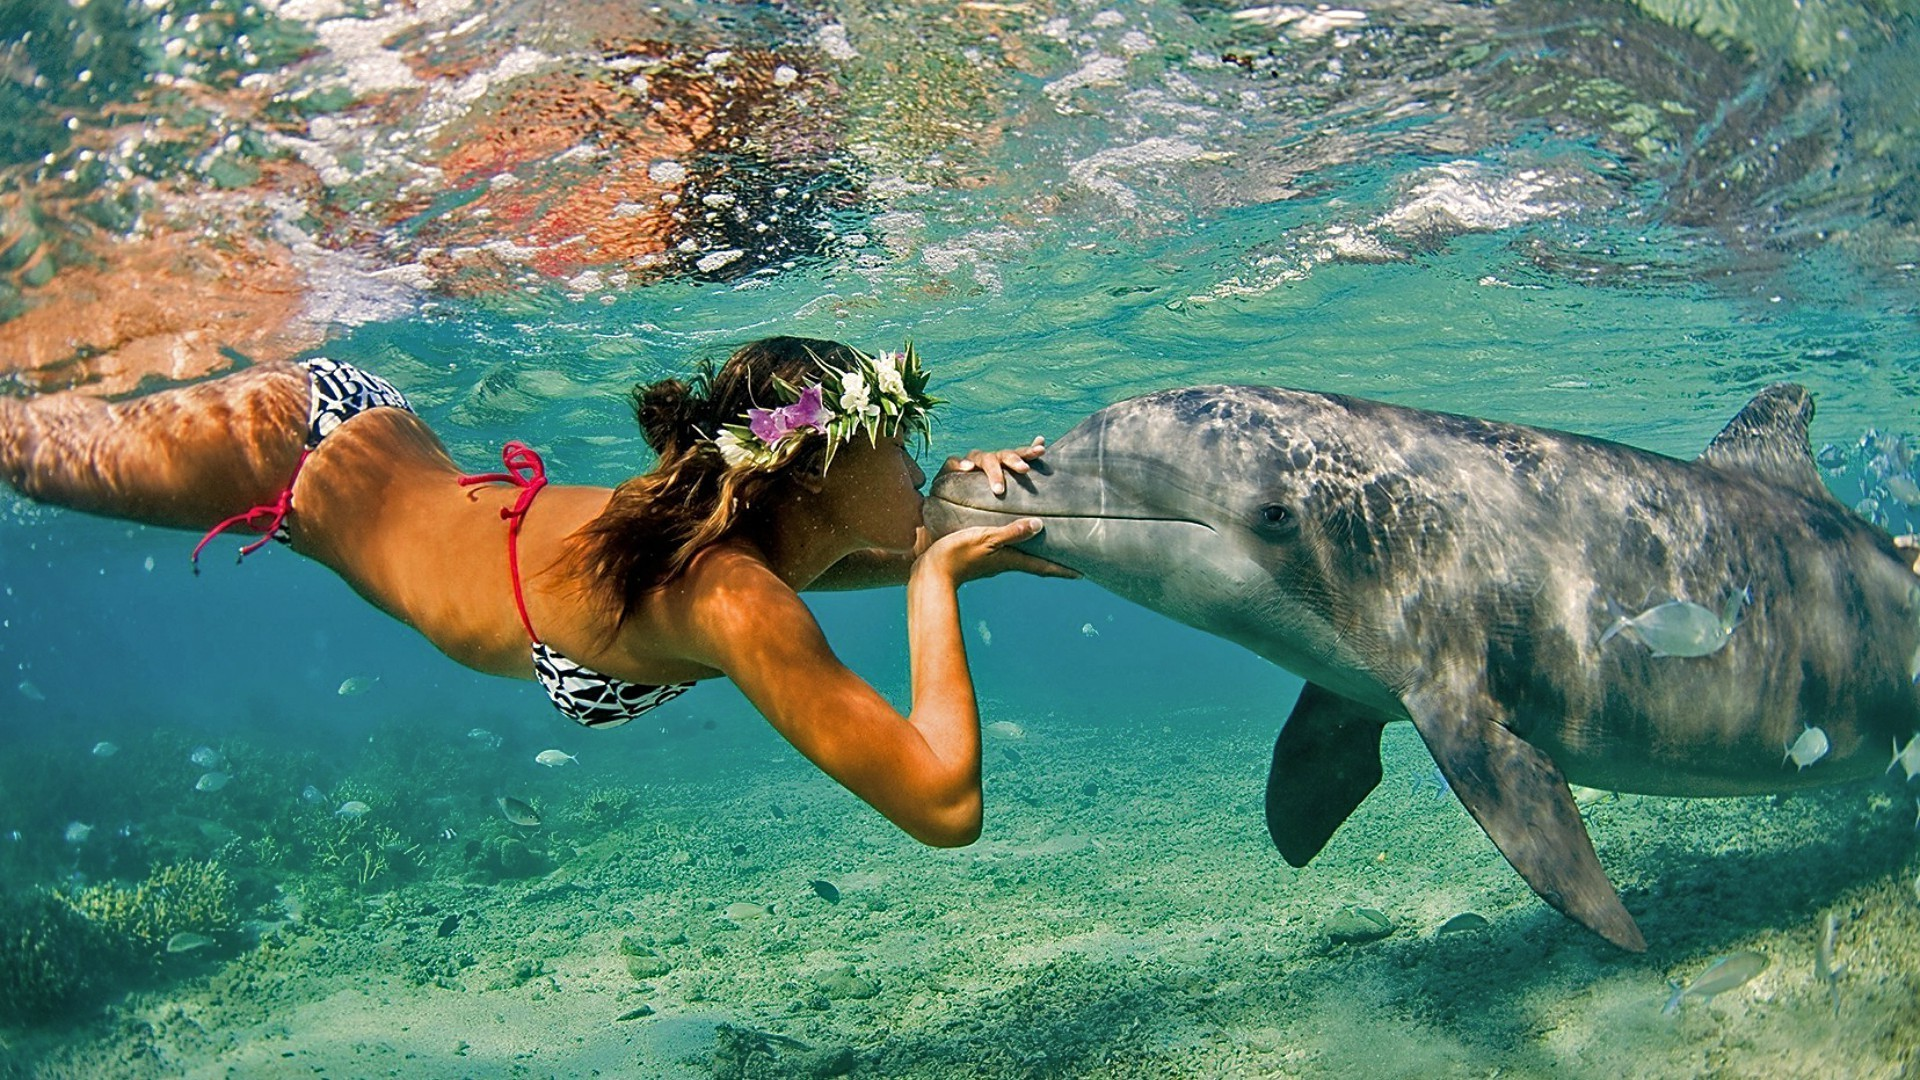 Marine life water swimming underwater ocean sea snorkeling nature tropical HD  wallpaper. Android wallpapers for free.